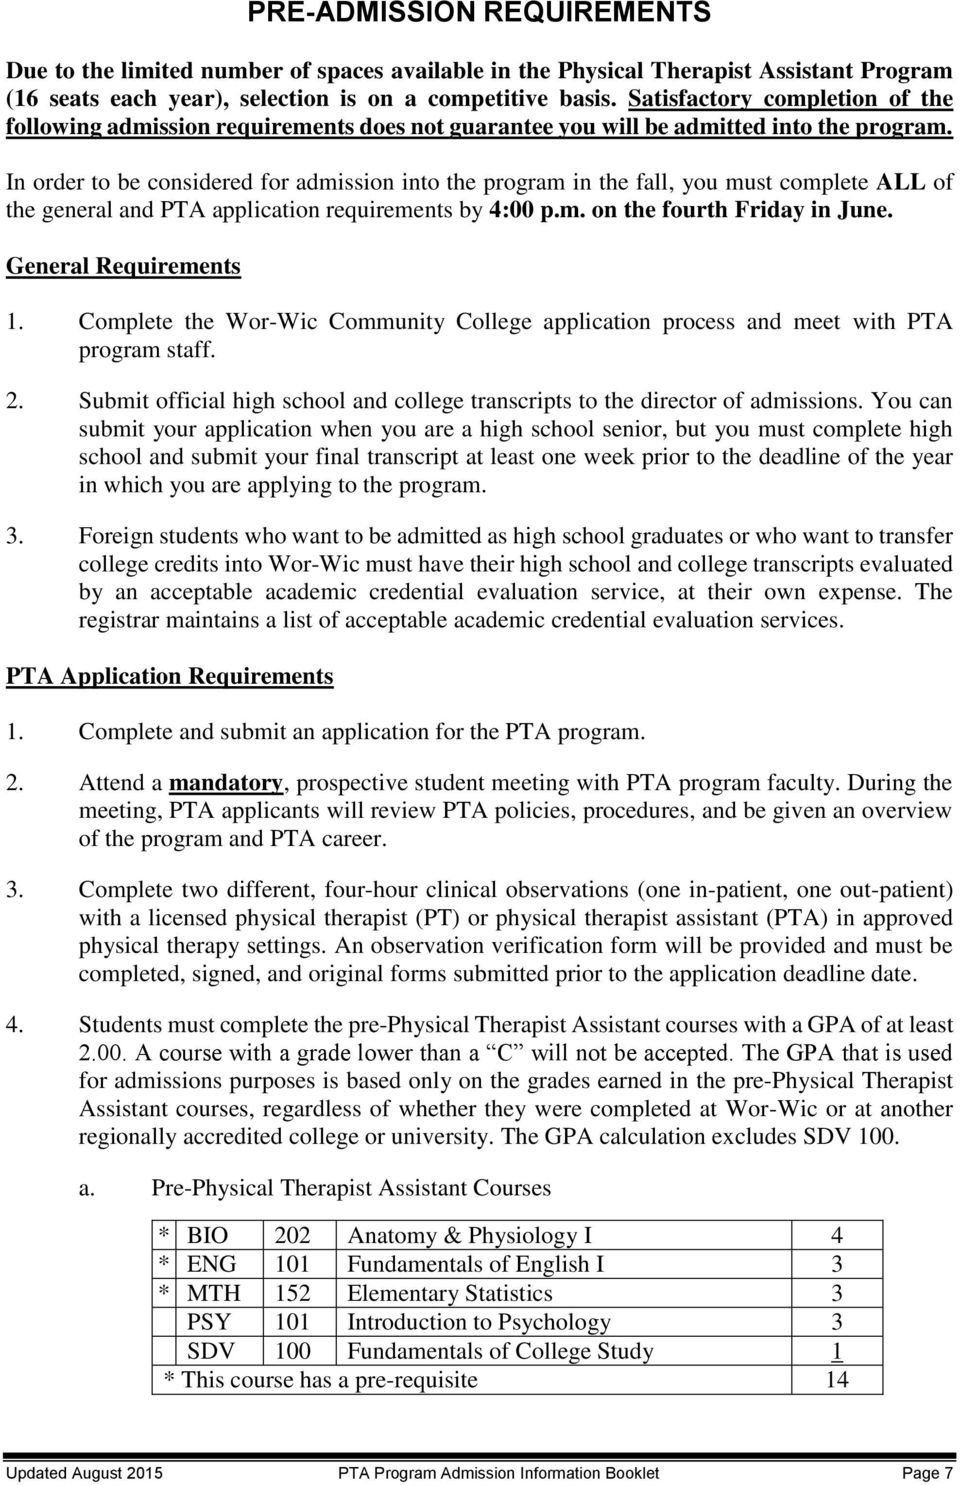 PHYSICAL THERAPIST ASSISTANT PROGRAM ADMISSION INFORMATION - PDF